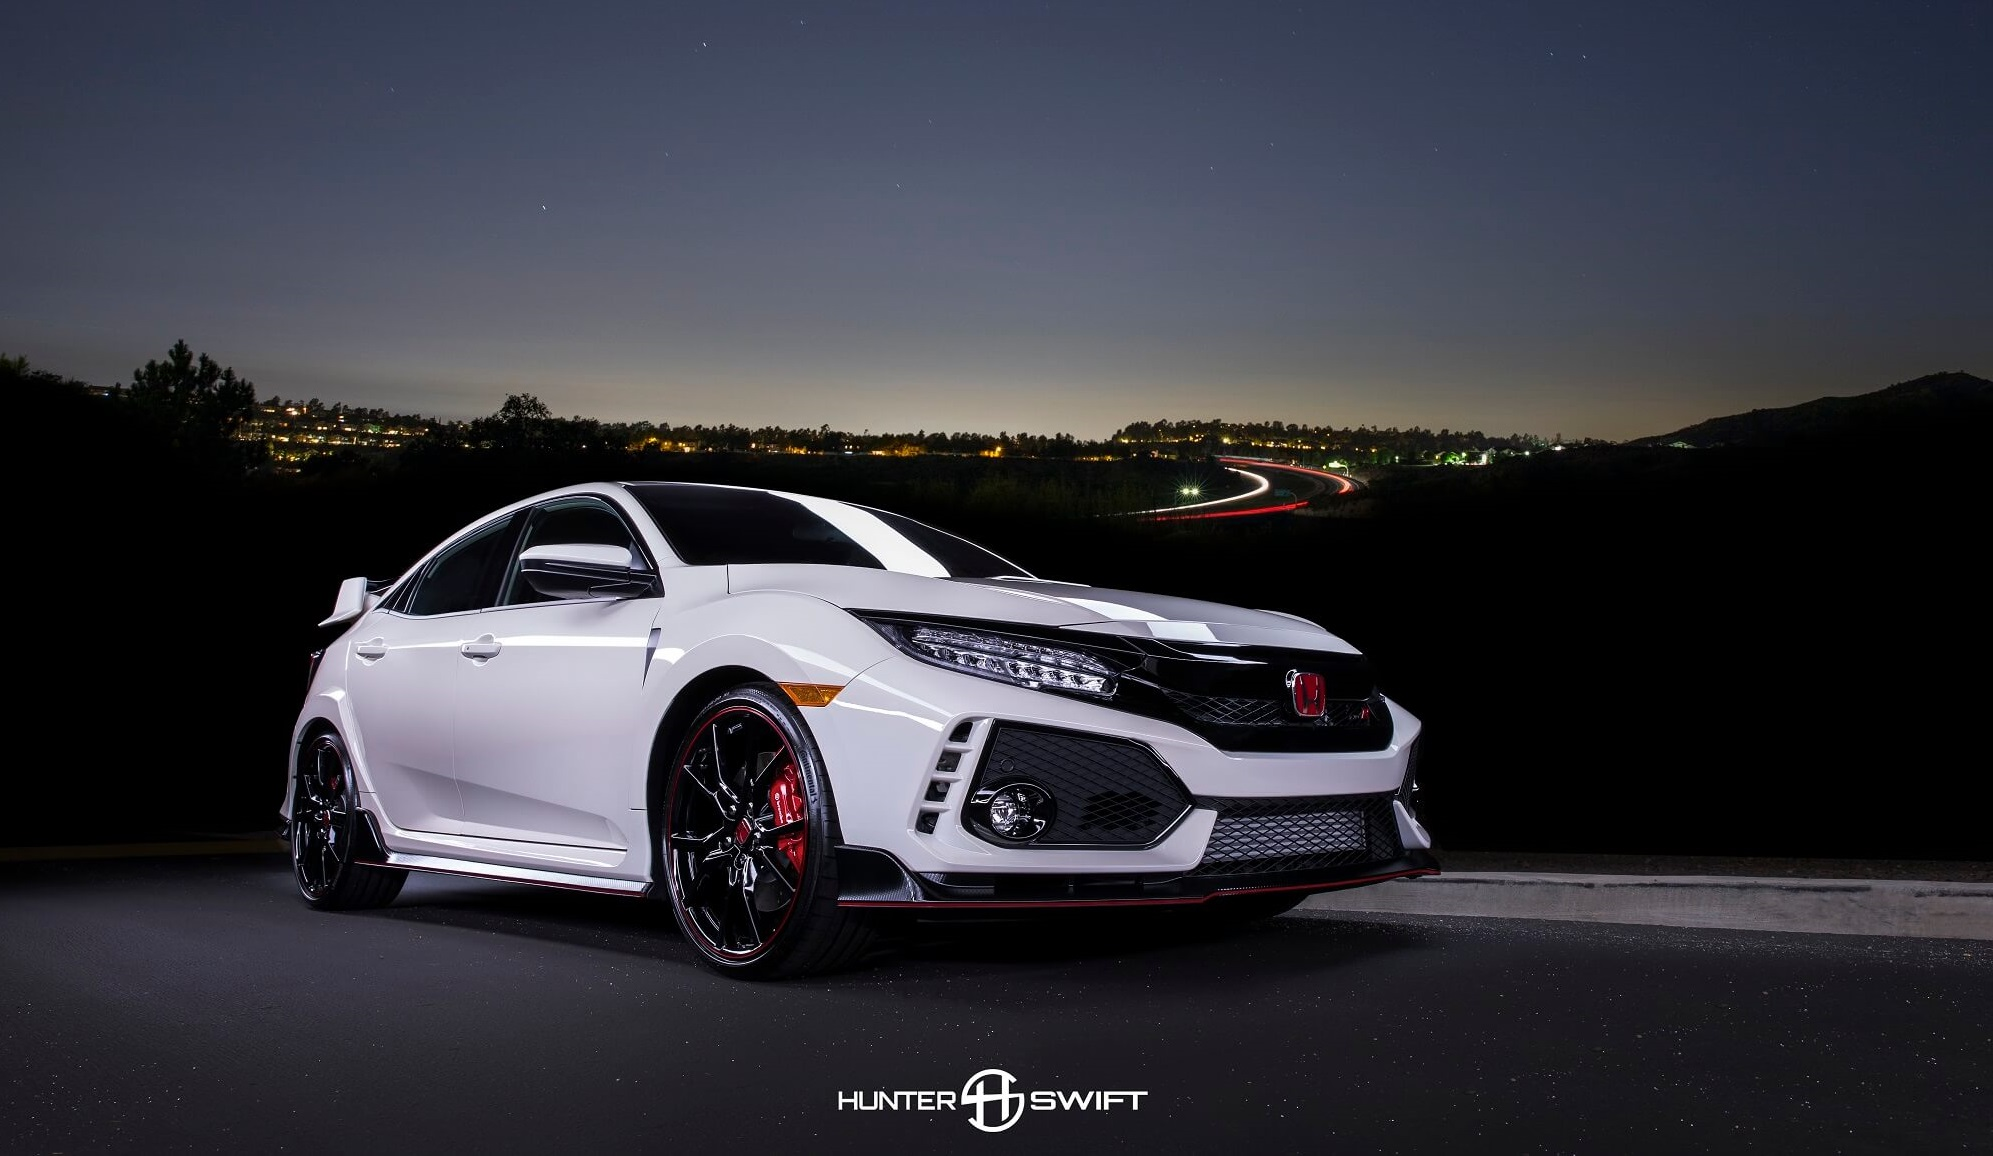 exclusive 2017 civic type r in the us after 25 years cars247. Black Bedroom Furniture Sets. Home Design Ideas